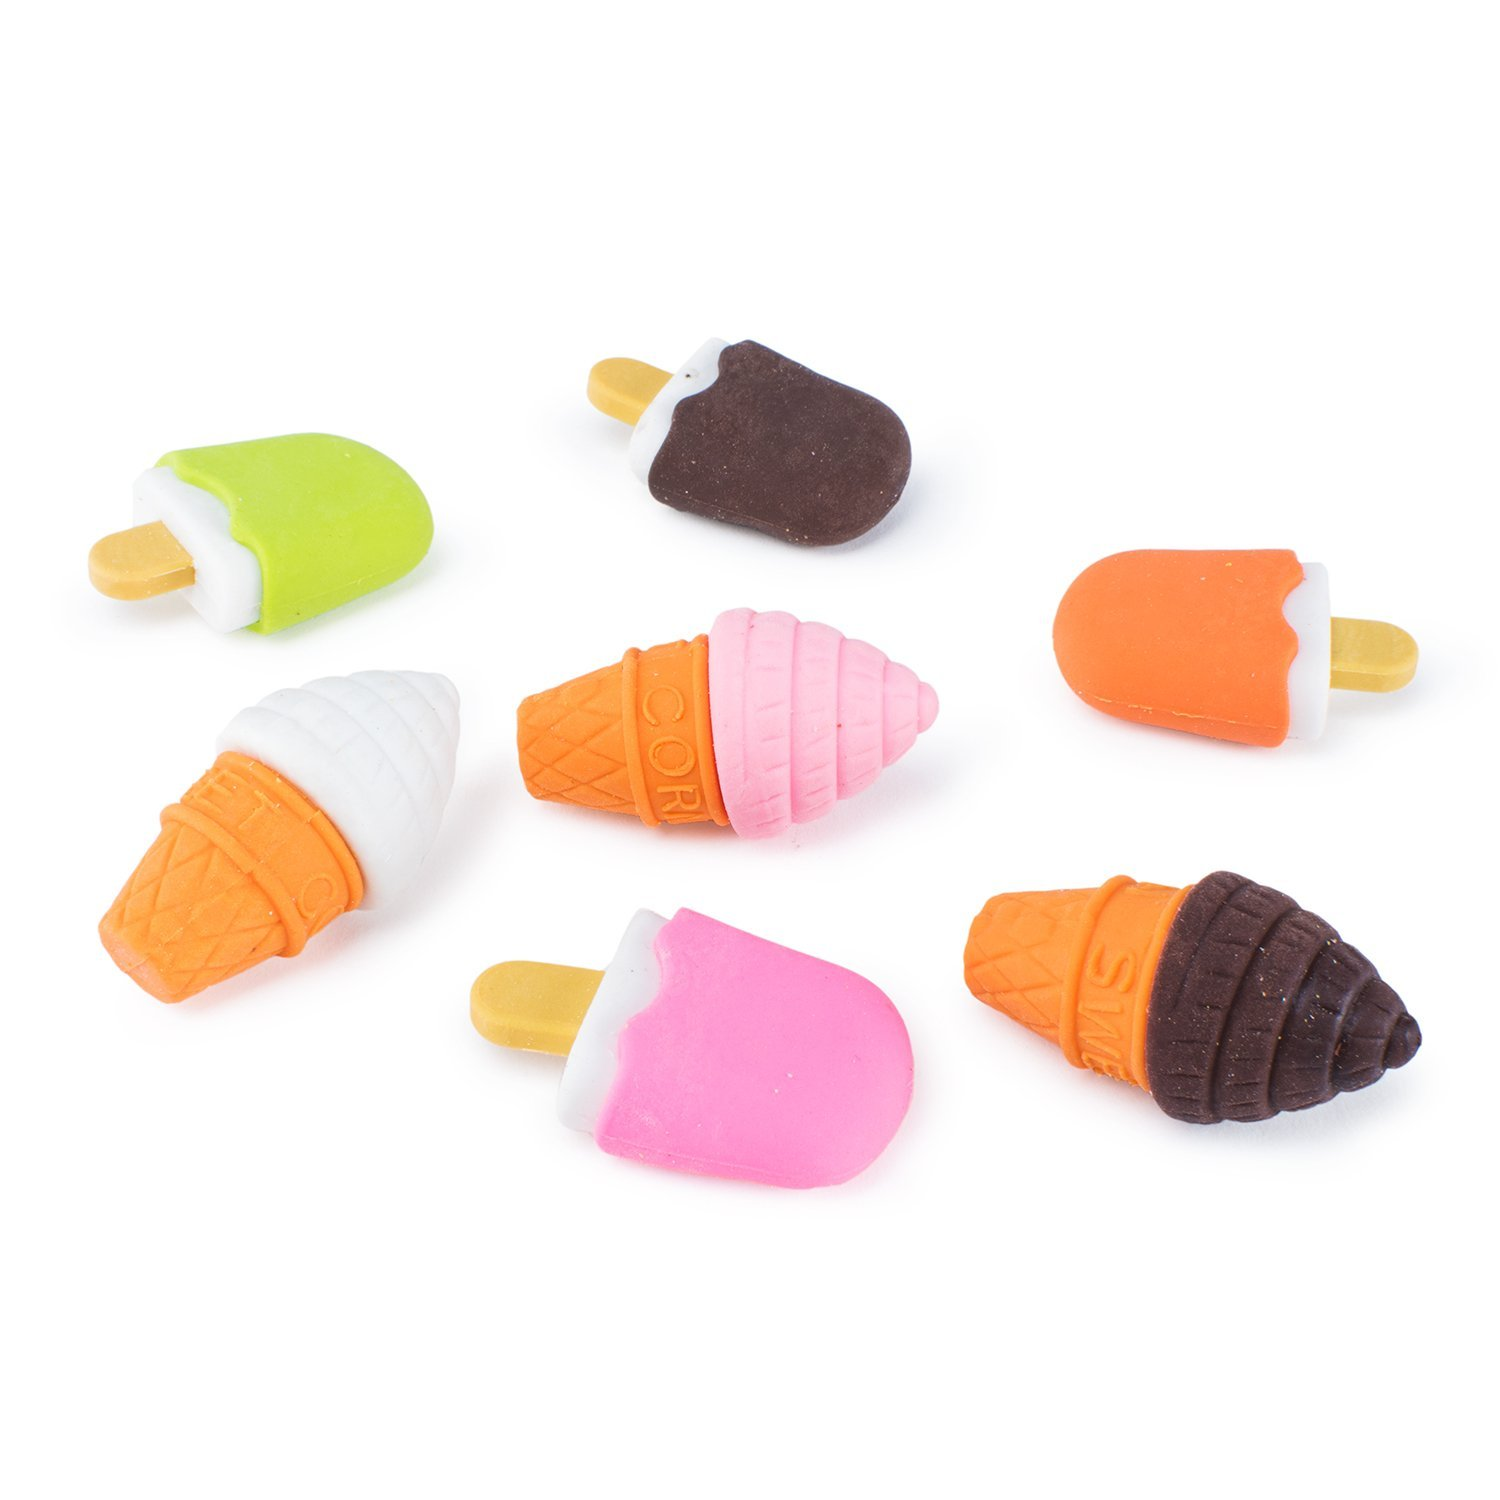 Colorful Mini Ice Cream Cone Fudge Pop Frozen Treat Erasers Children Toy Party Favors (48 Pieces) by Super Z Outlet